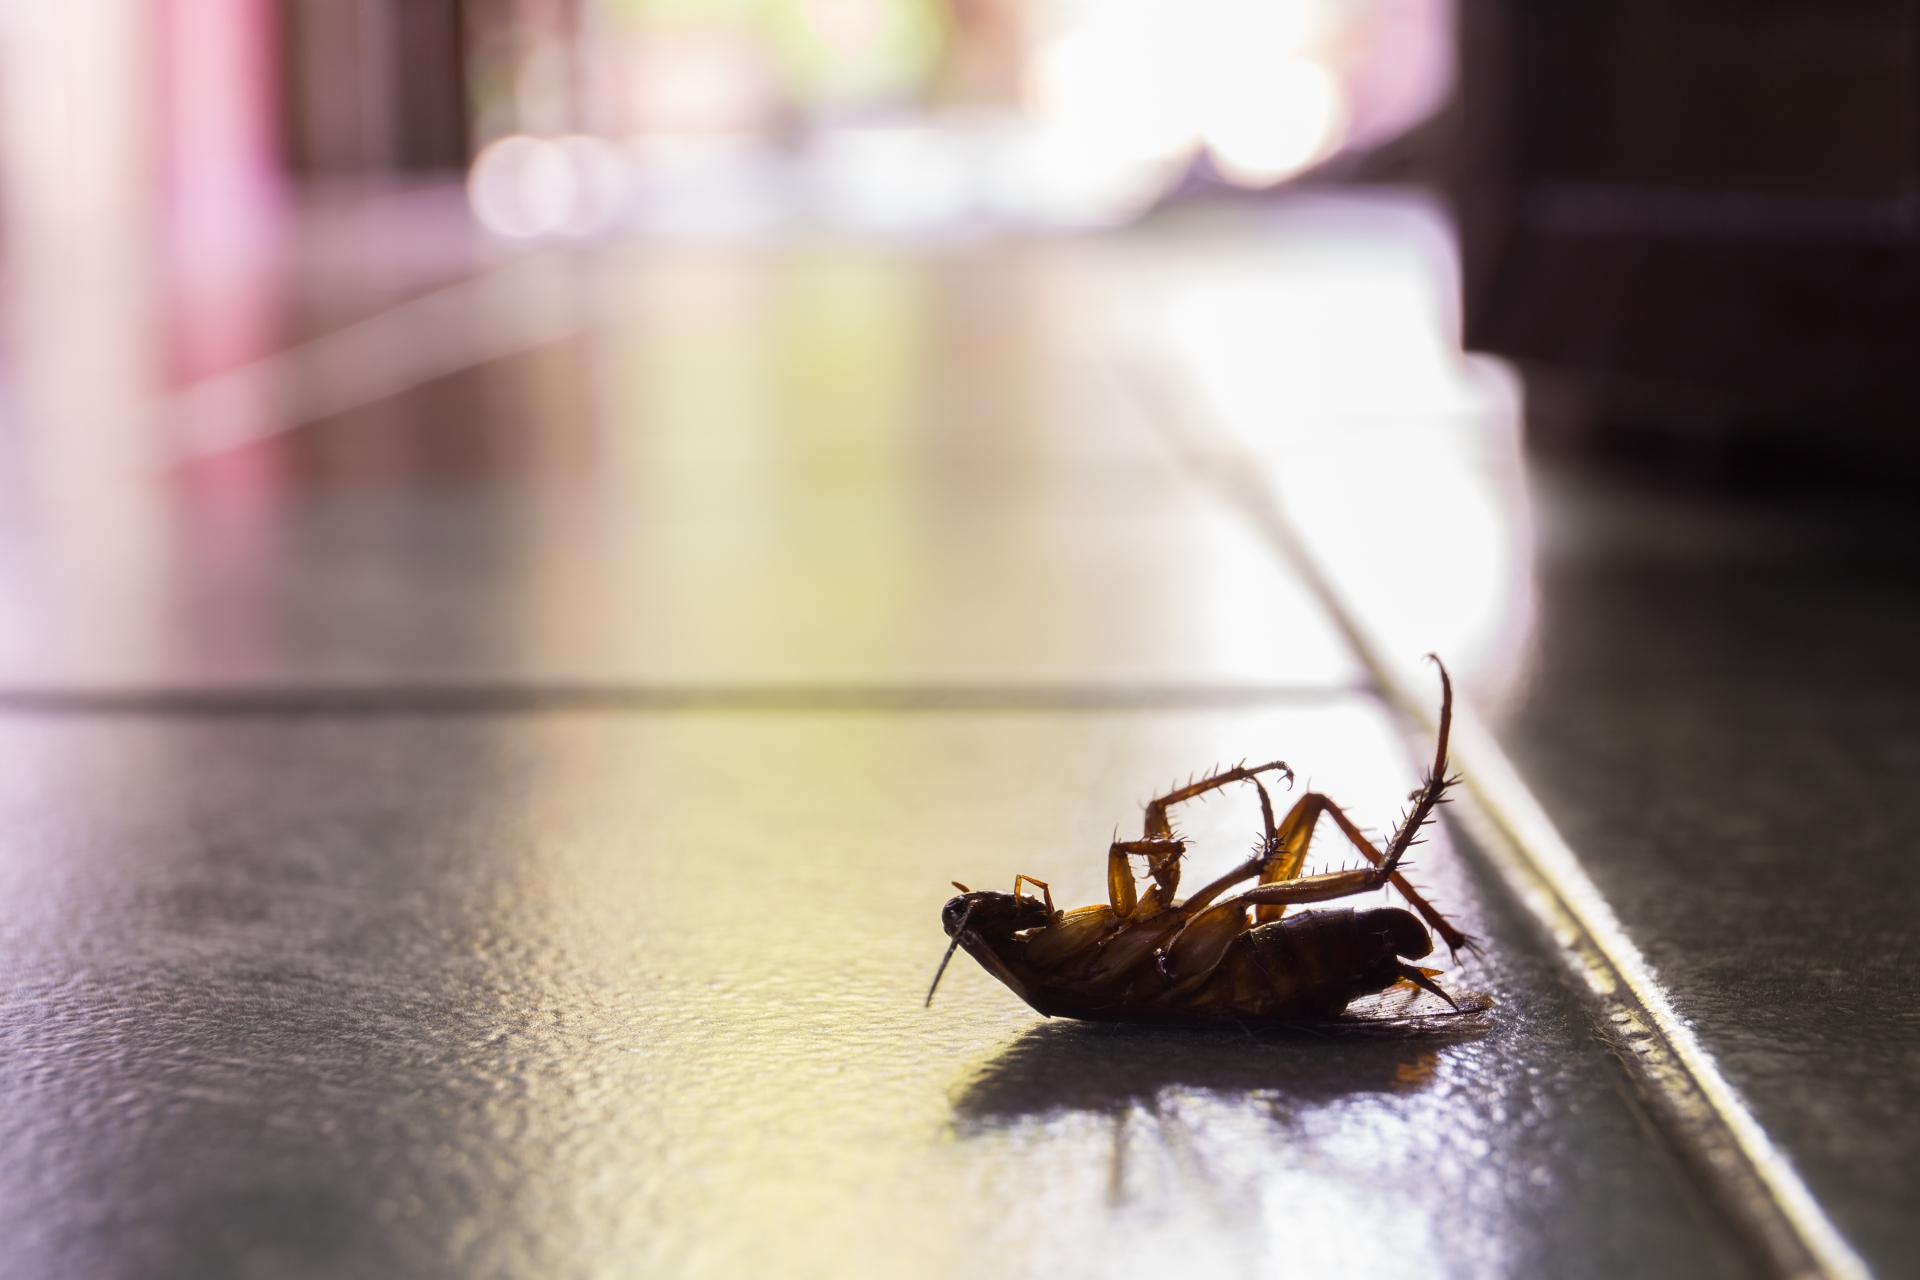 Cockroach Control, Pest Control in Battersea, SW11 . Call Now 020 8166 9746